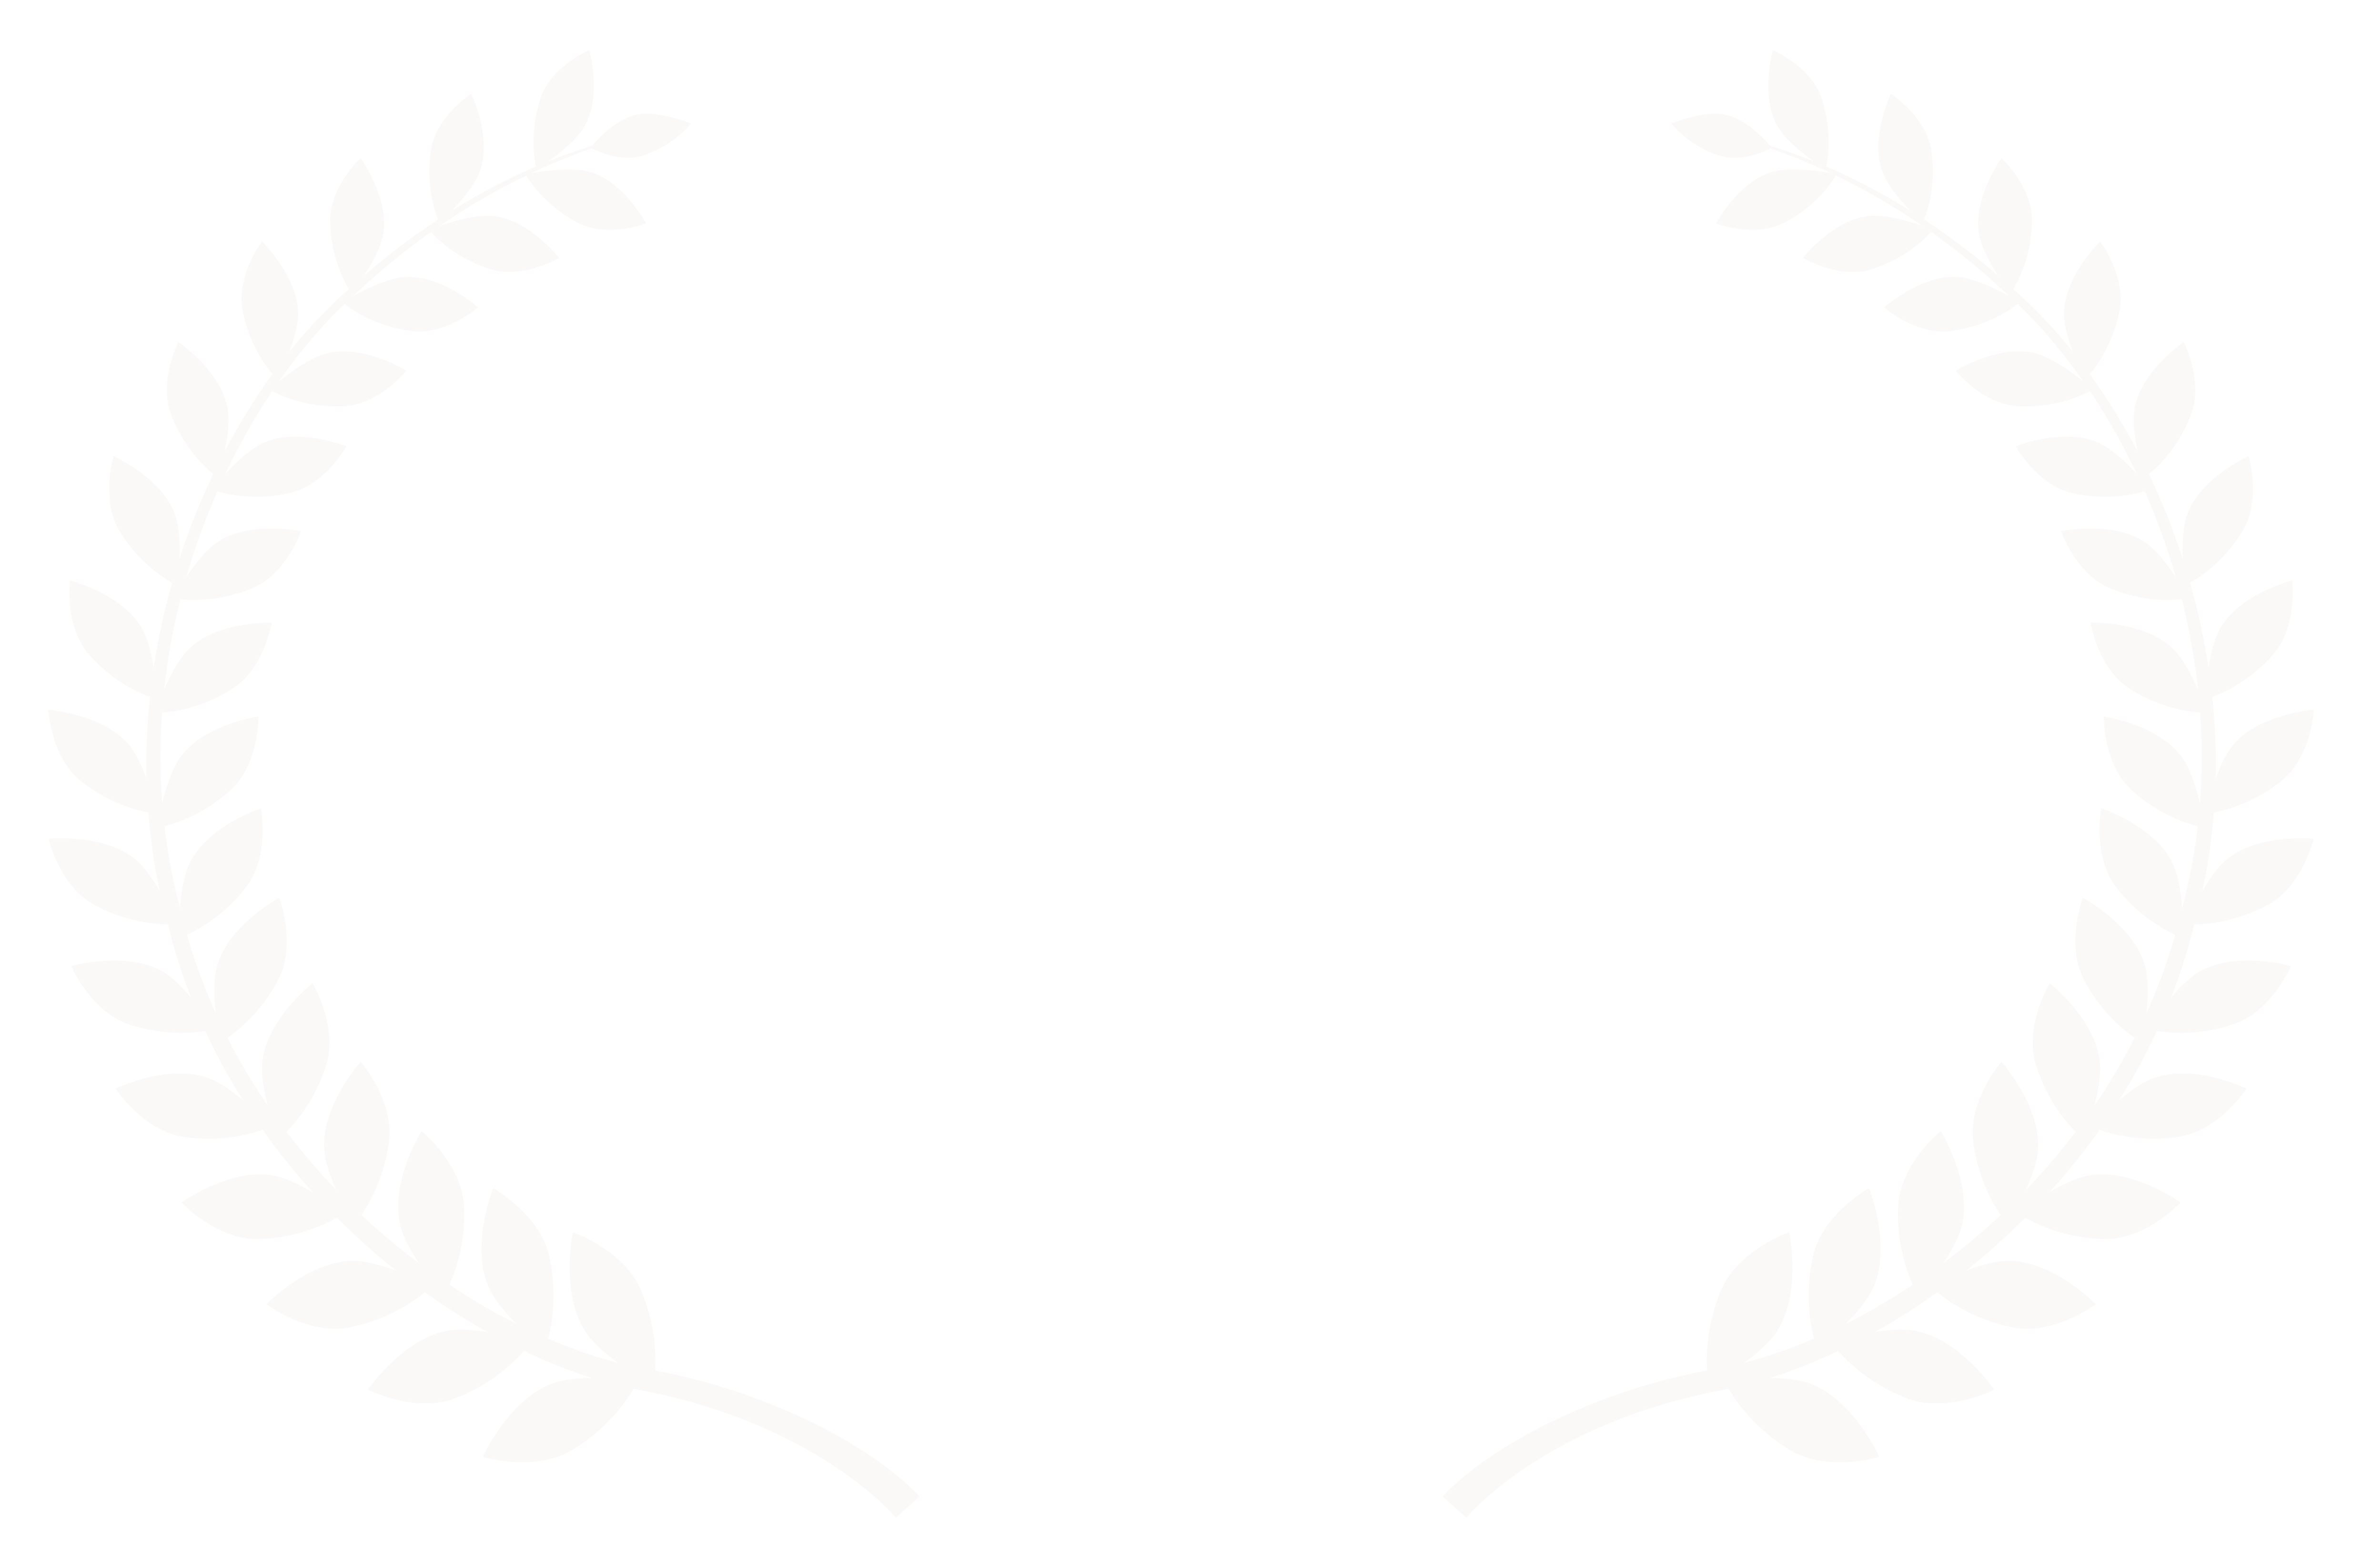 Macoproject